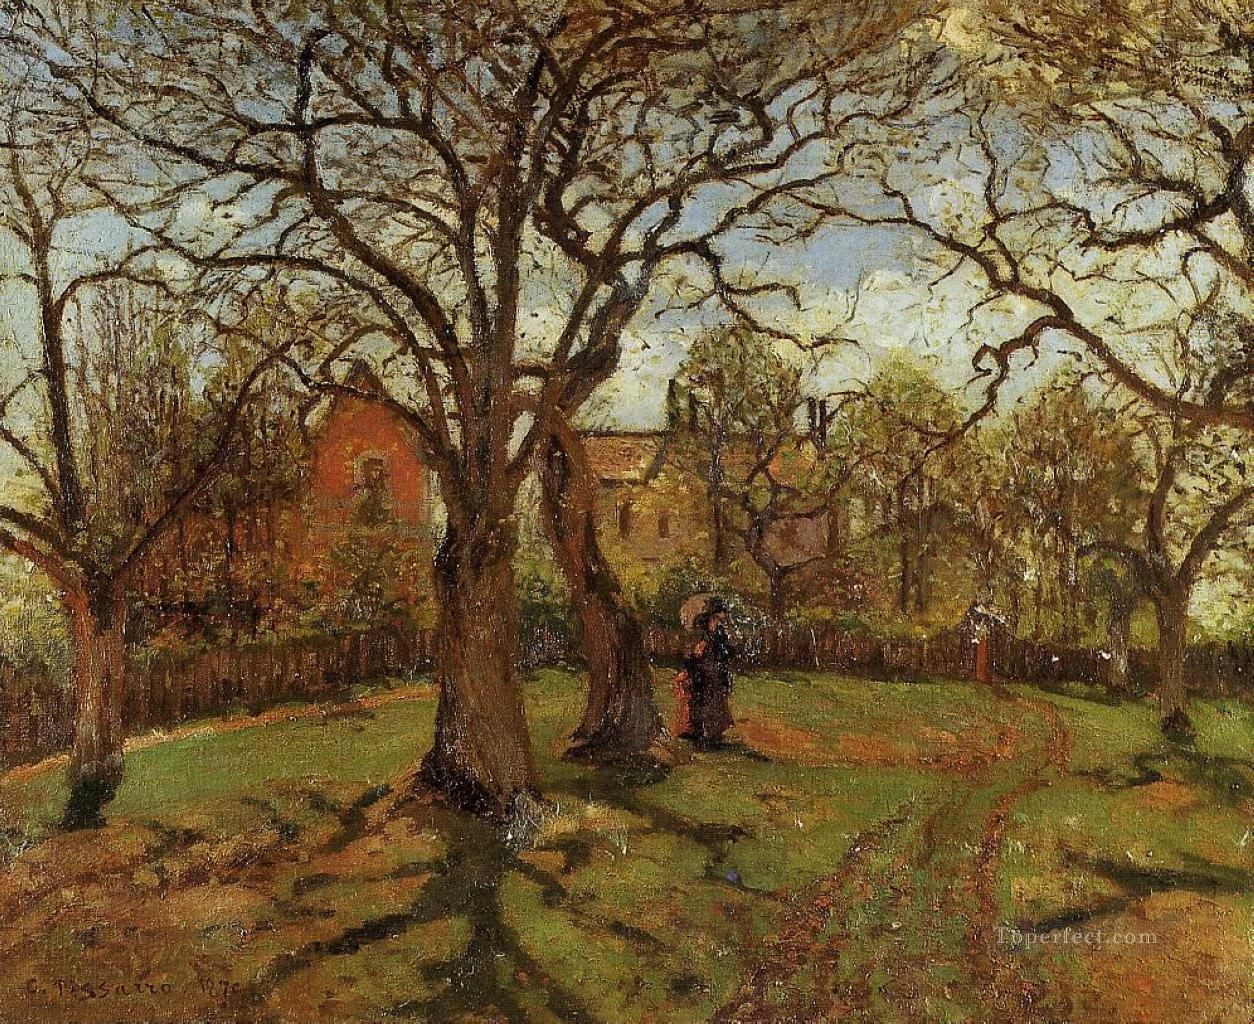 chestnut trees louveciennes spring 1870 Camille Pissarro scenery Oil Paintings